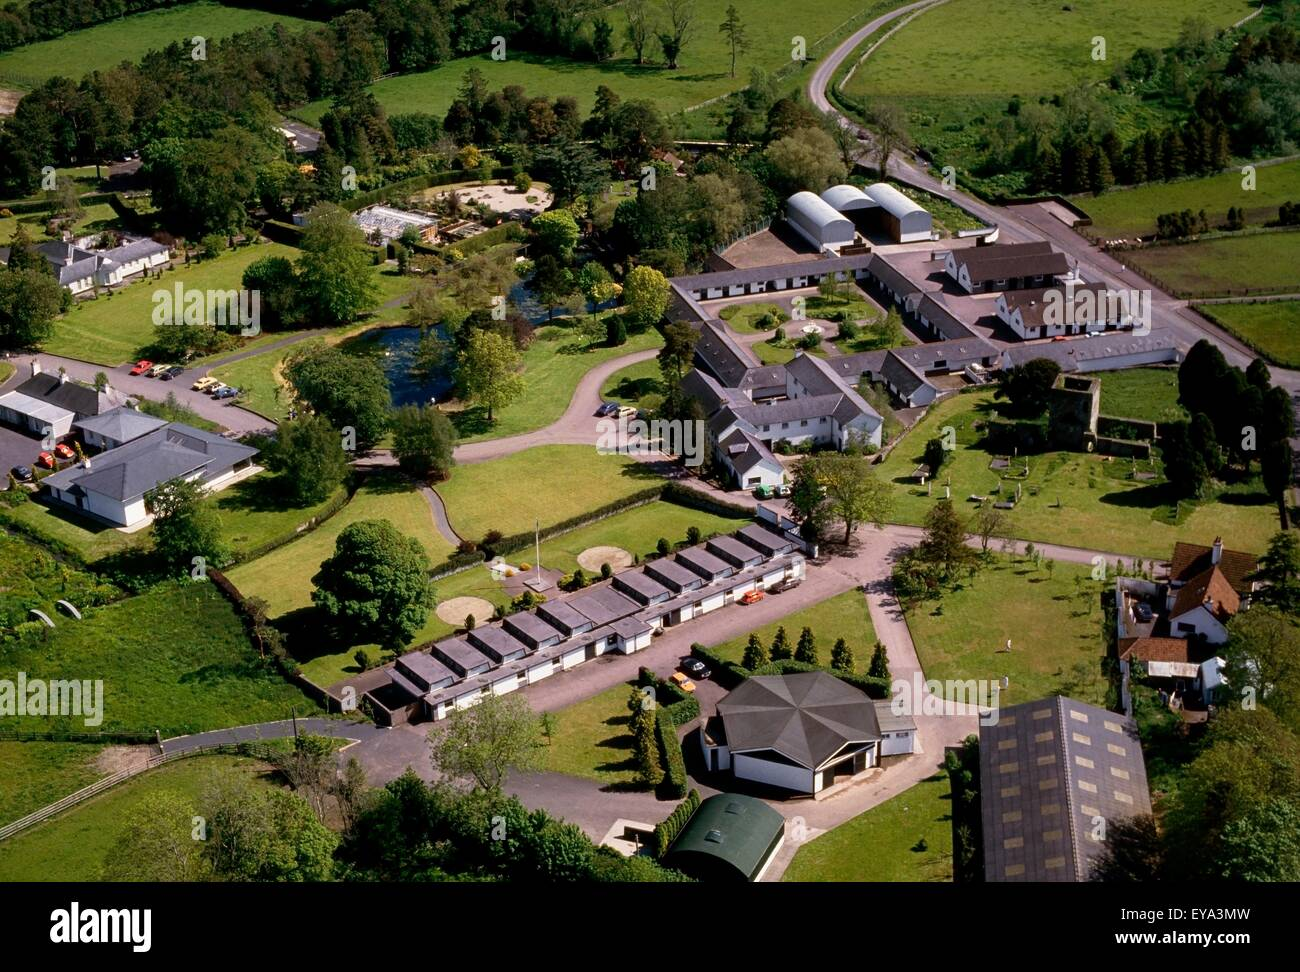 Irish National Stud: Irish National Stud, Tully, County Kildare, Ireland